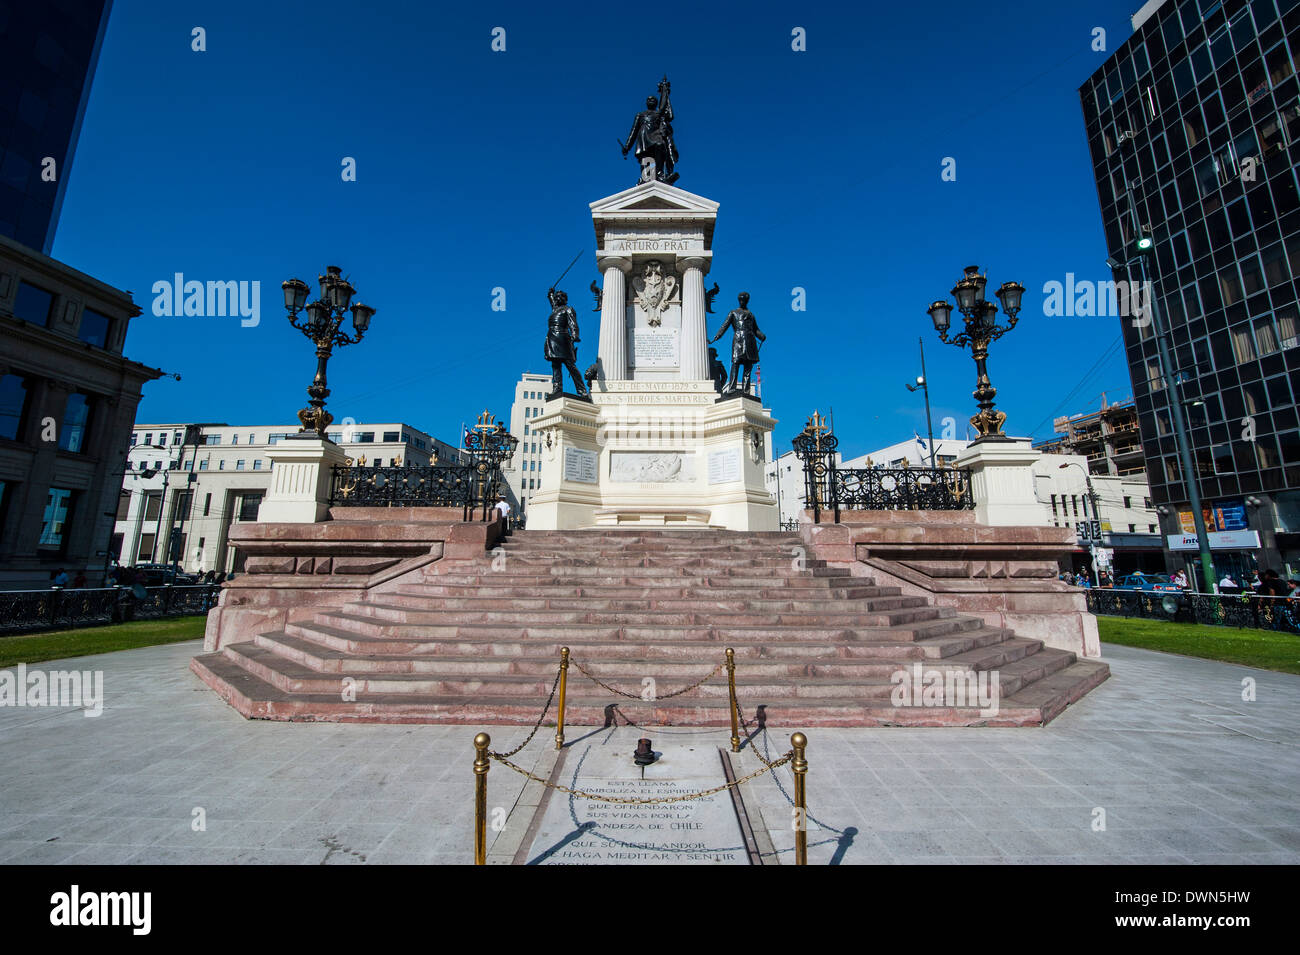 Monument to the Heroes of Iquique, Valparaiso, Chile, South America - Stock Image